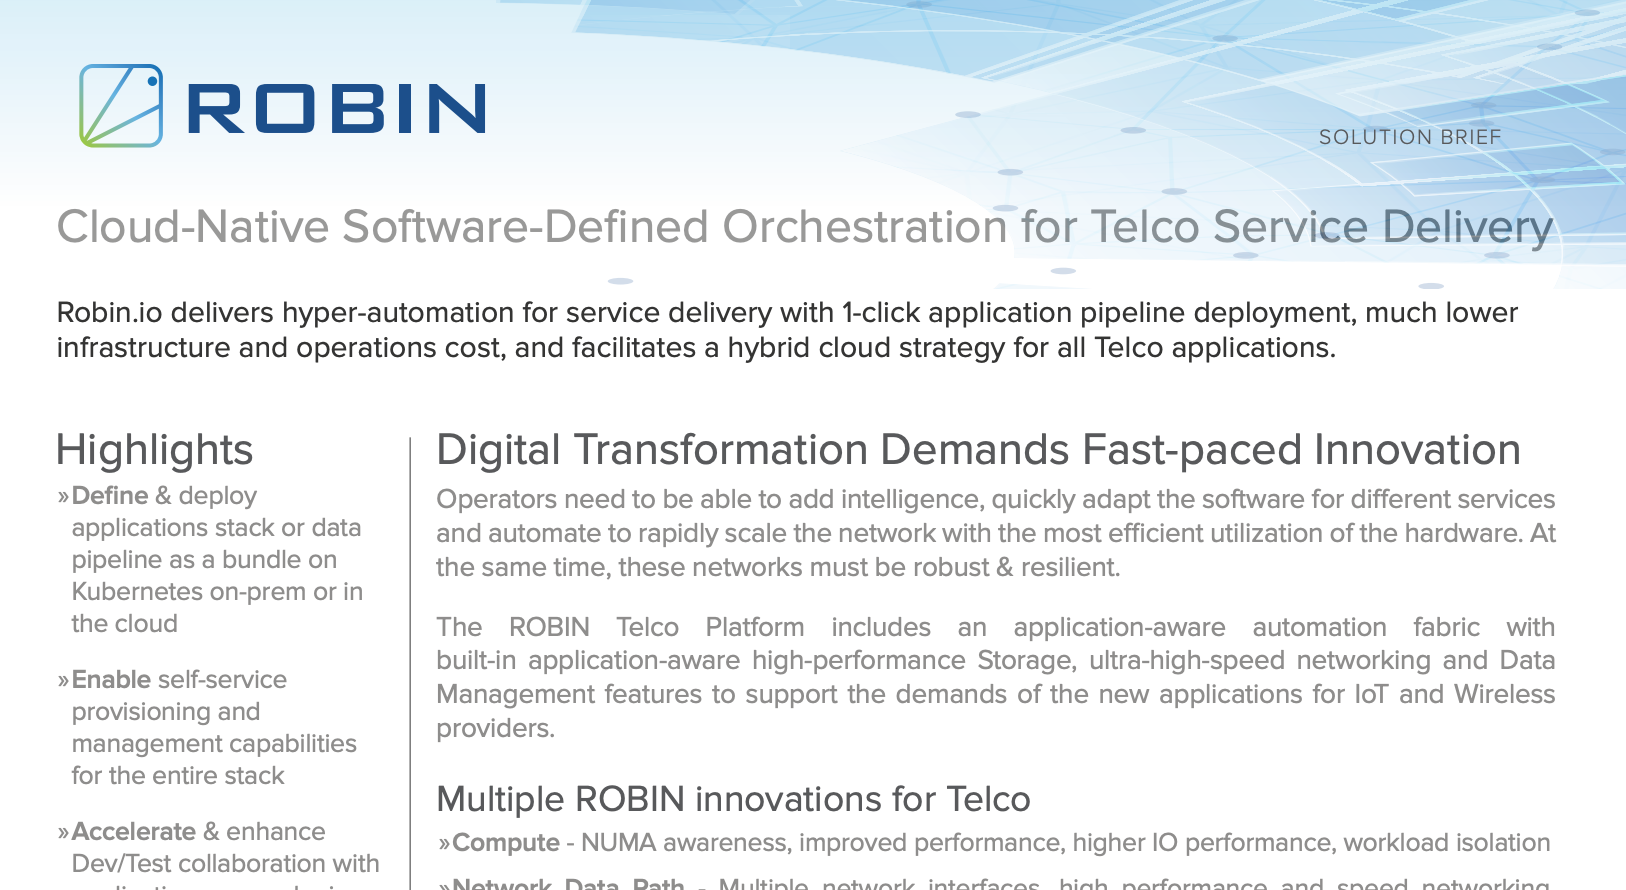 Cloud-Native Software-Defined Orchestration for Telco Service Delivery